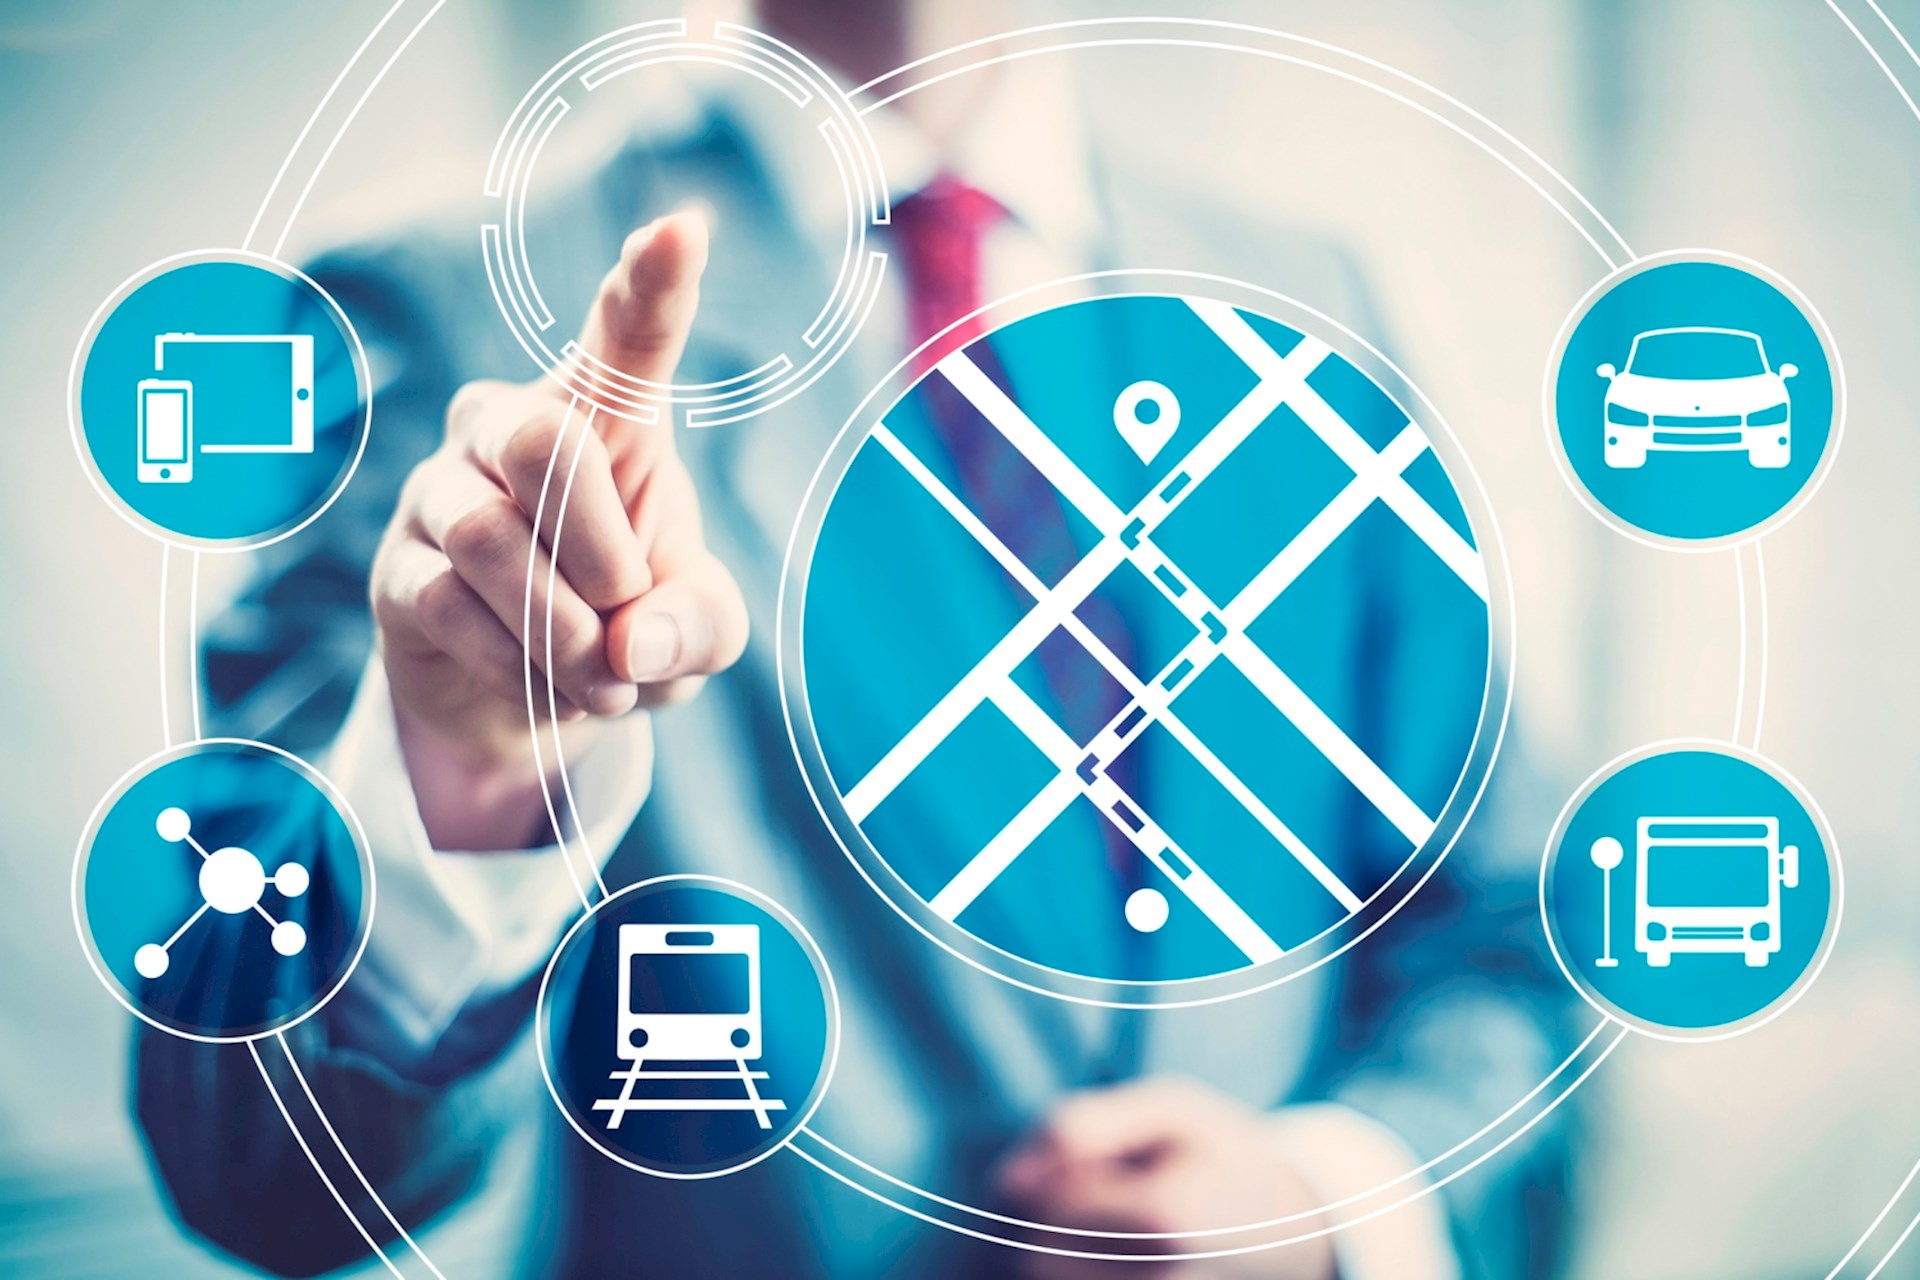 Mobility services set to take off in post-pandemic society